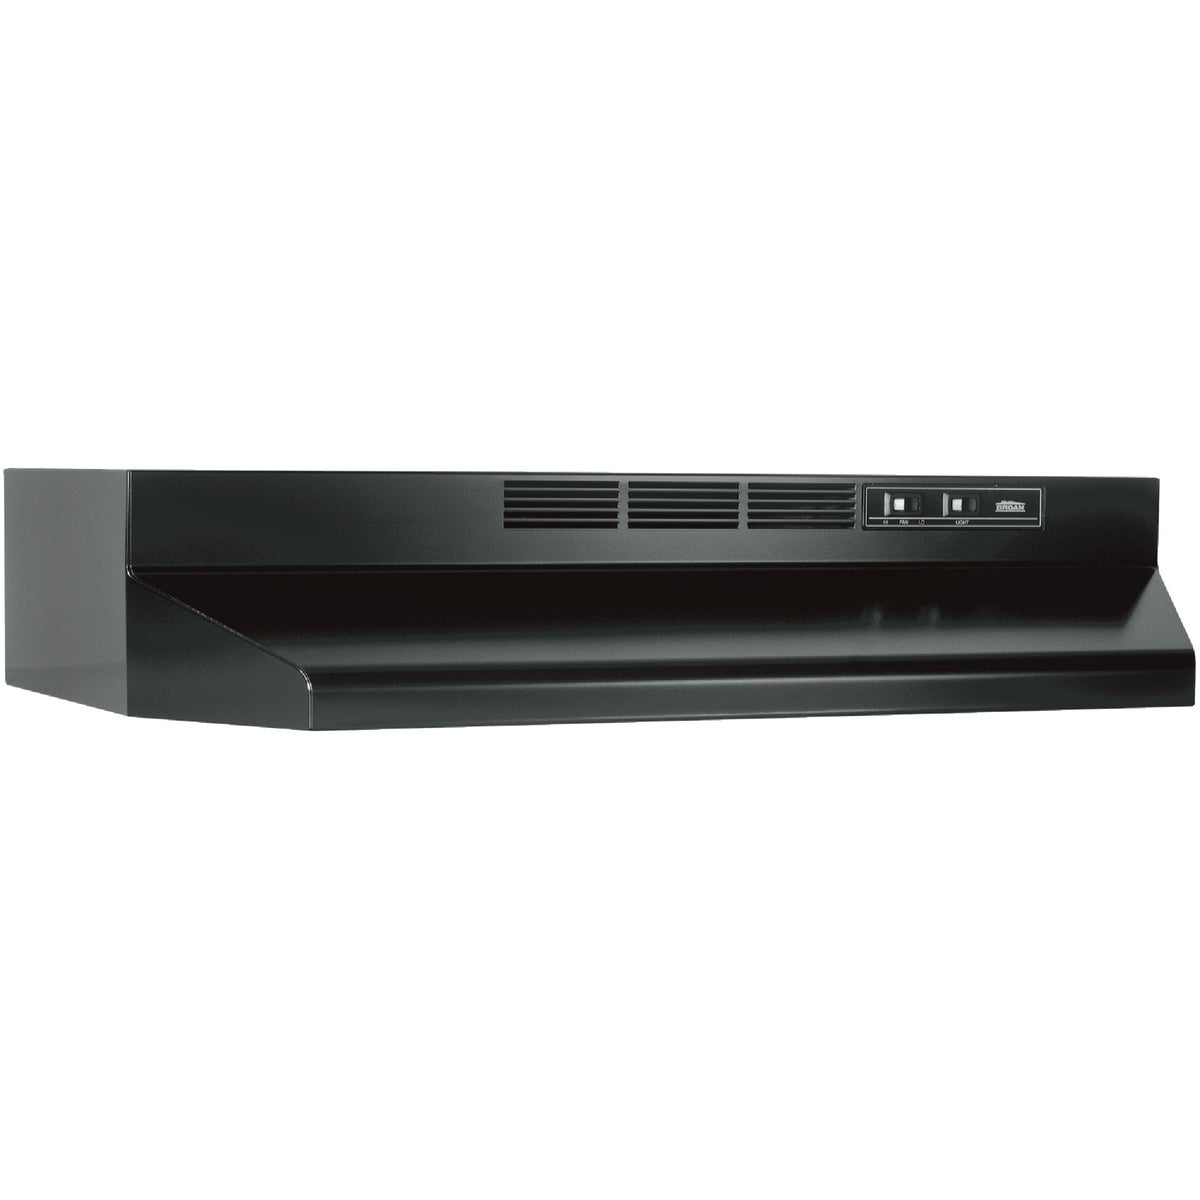 "30"" BLACK RANGE HOOD - 413023 by Broan Nutone"